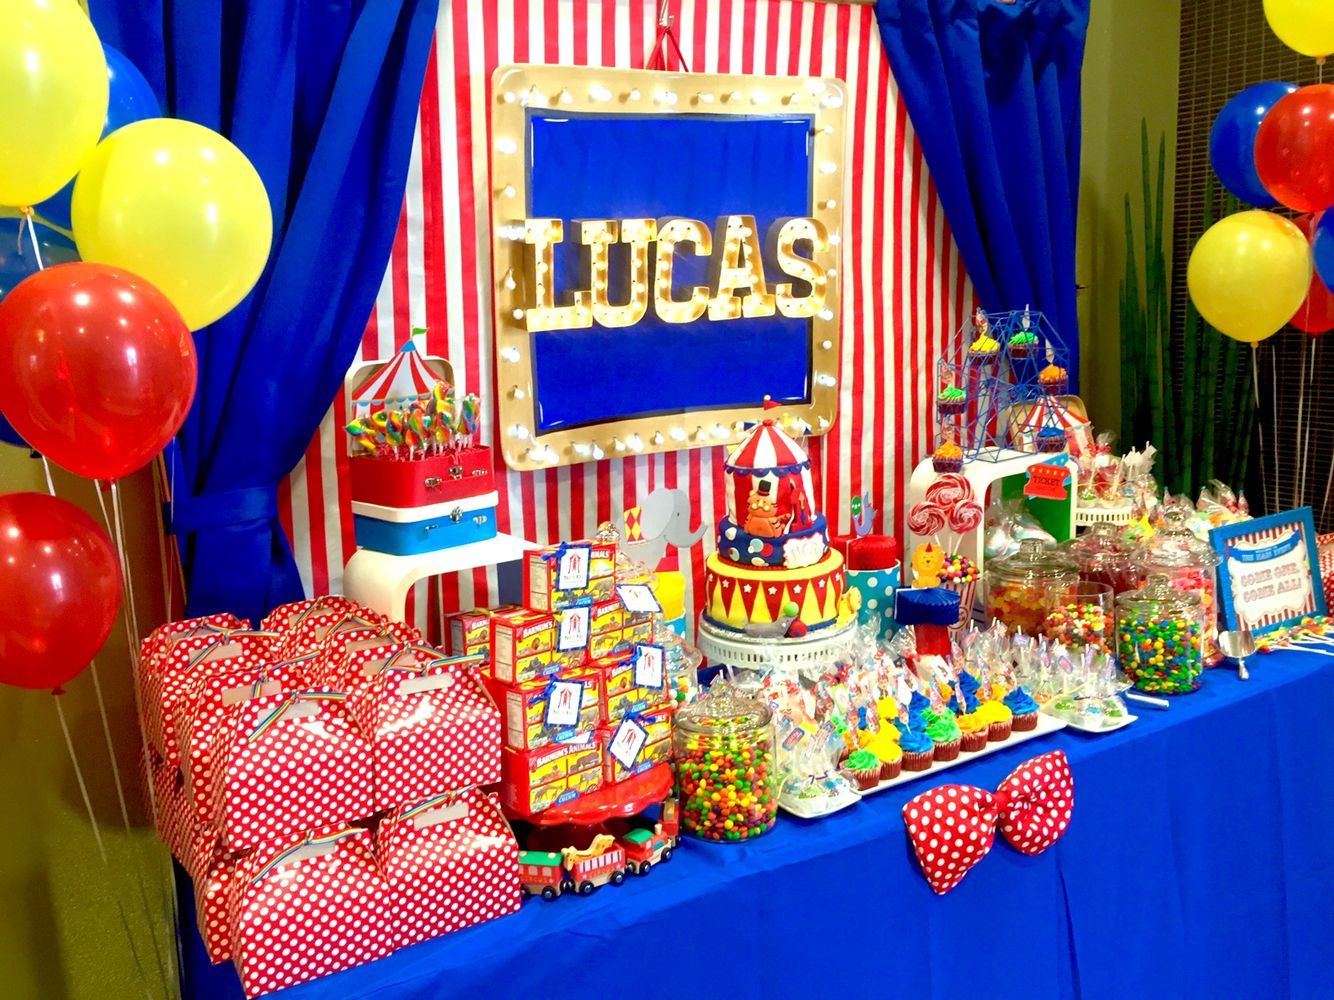 Circus Theme Candy Table By Glam Candy Buffets Circus Birthday Party Theme Circus Birthday Party Decorations Carnival Birthday Party Theme